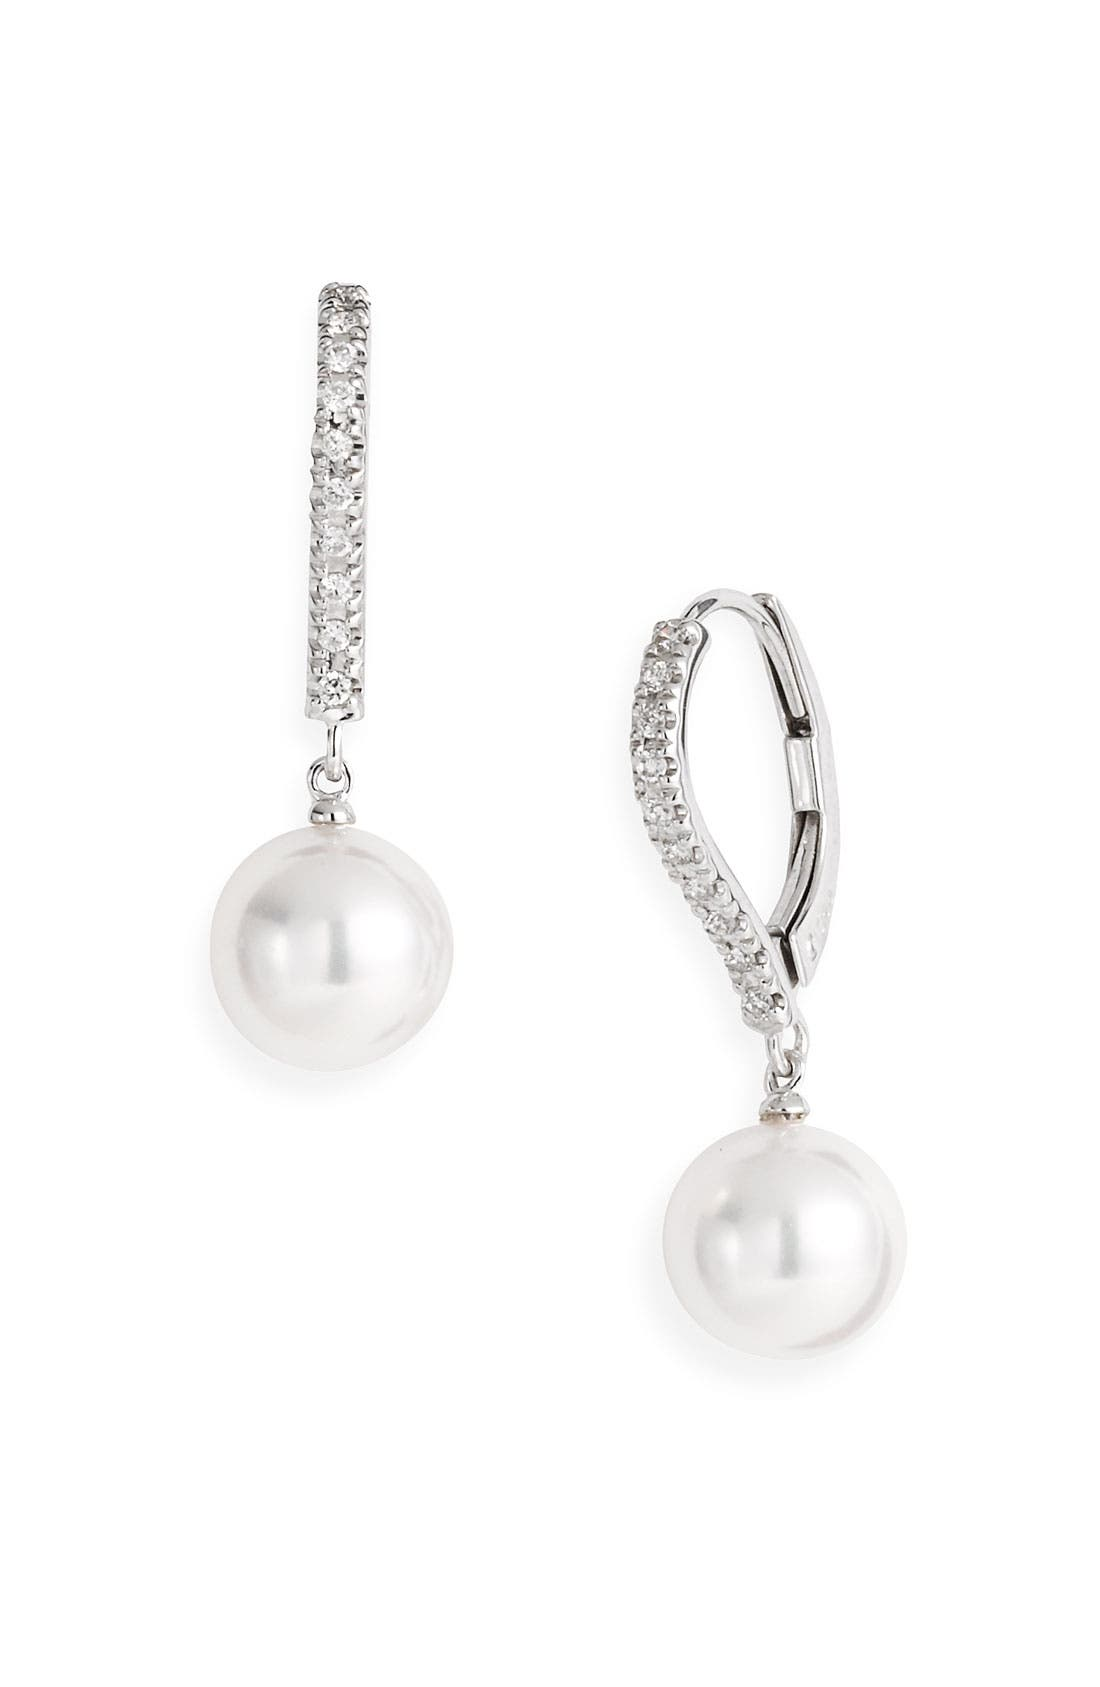 Main Image - Mikimoto Diamond & Akoya Cultured Pearl Earrings